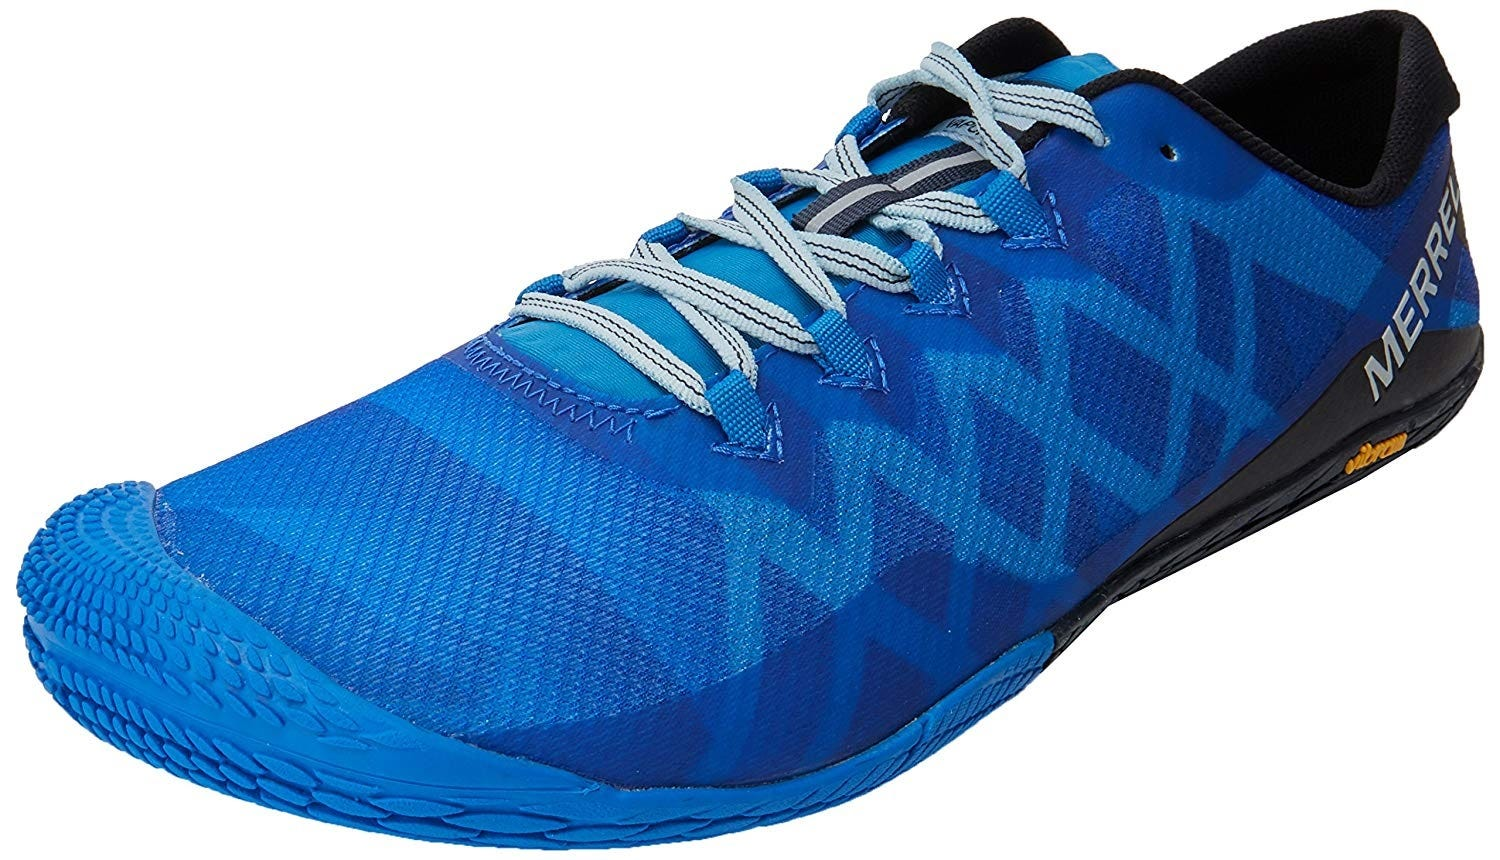 Merrell Vapor Glove 3 Trail Runner shoe.